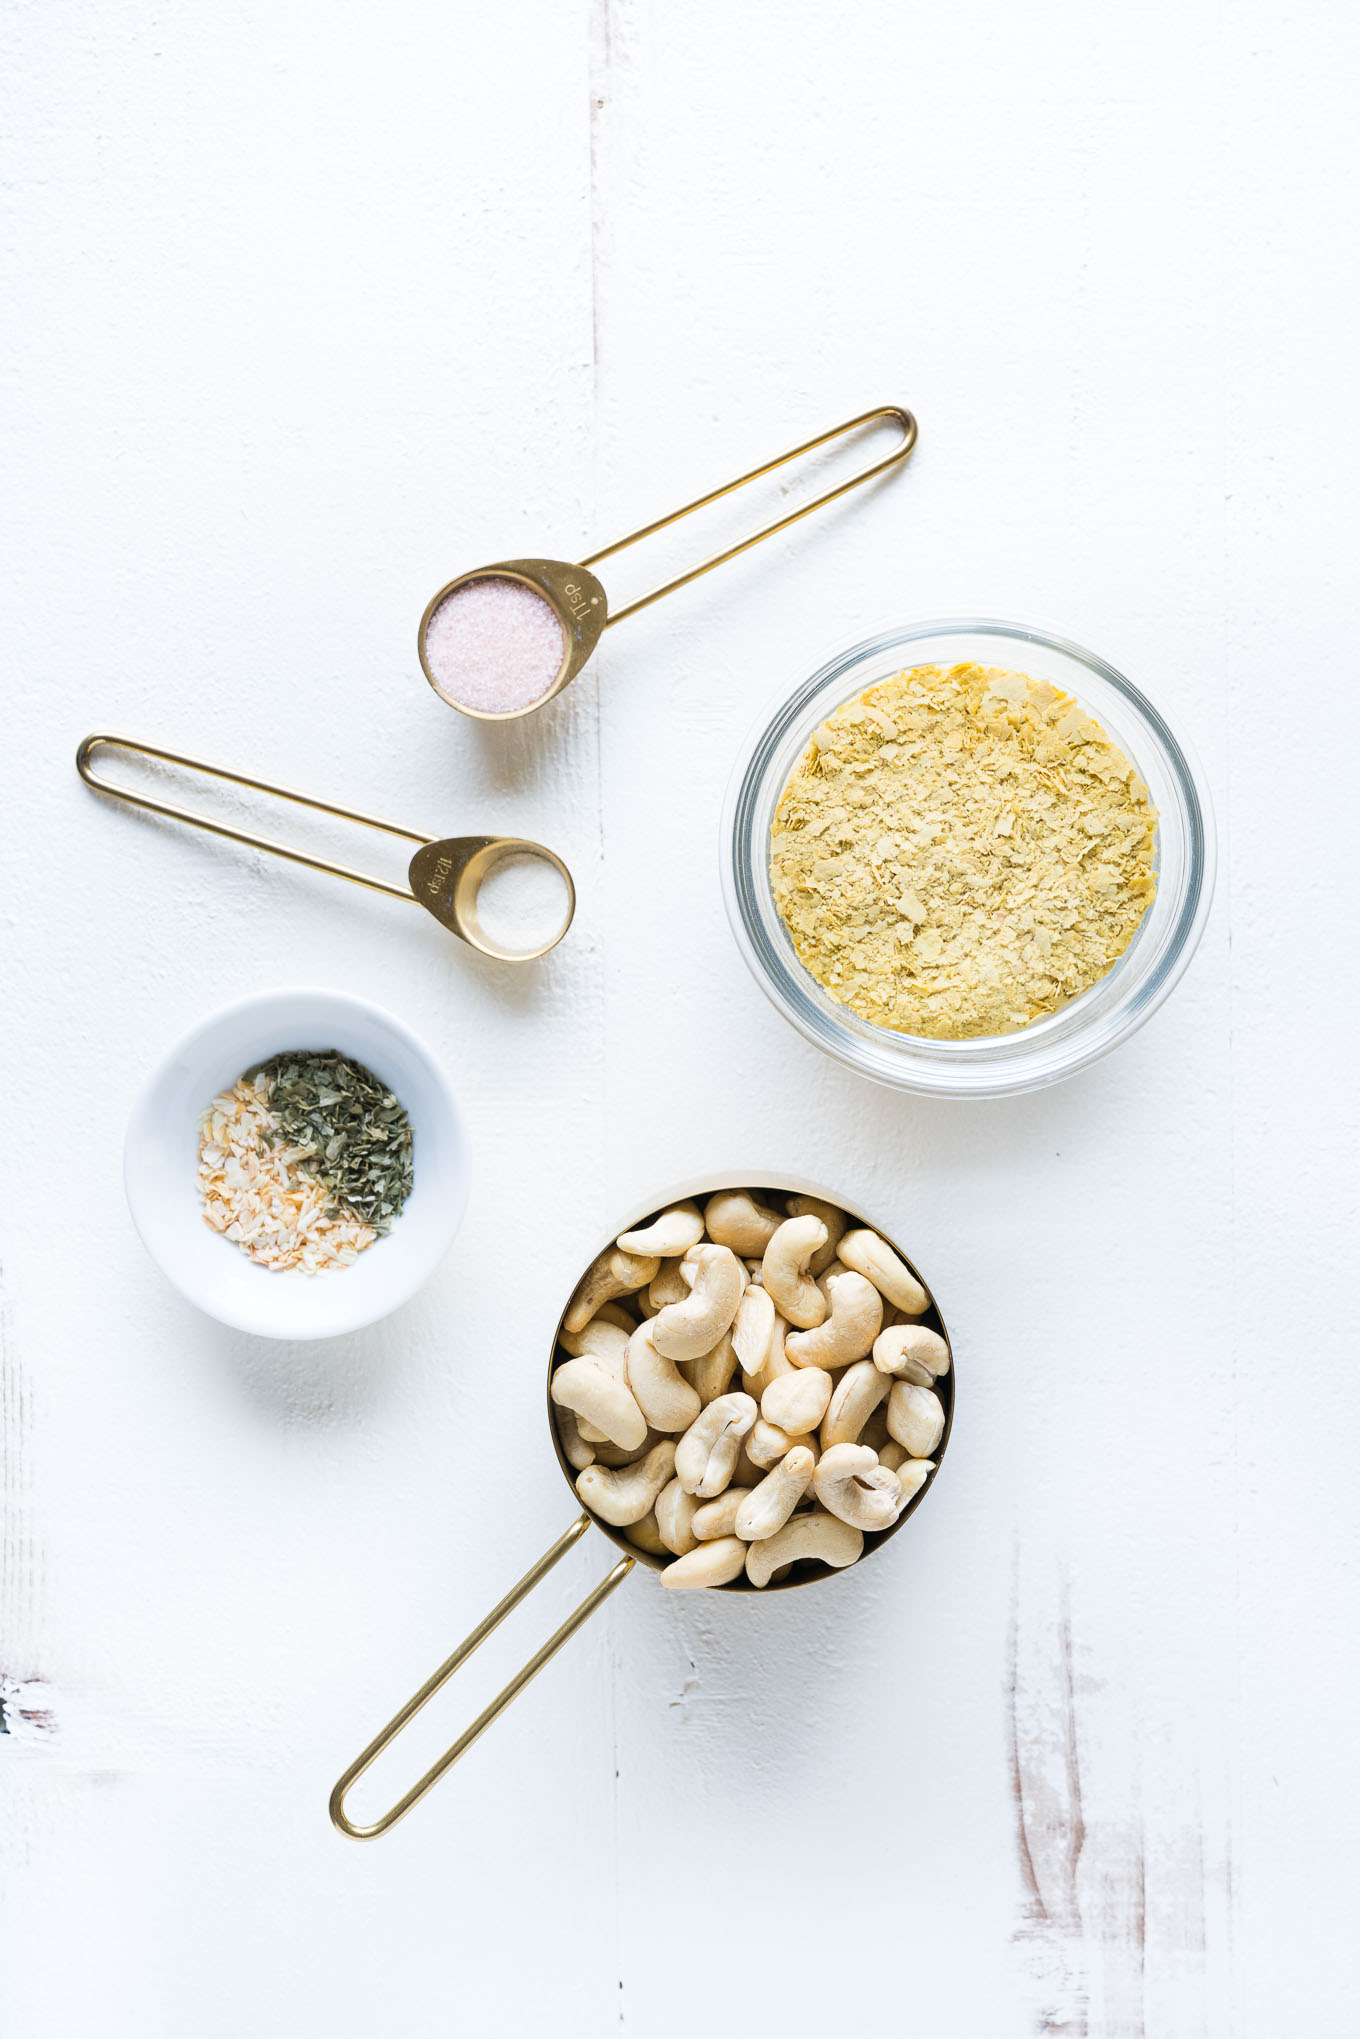 Vegan Parmesan Cheese Ingredients On Table